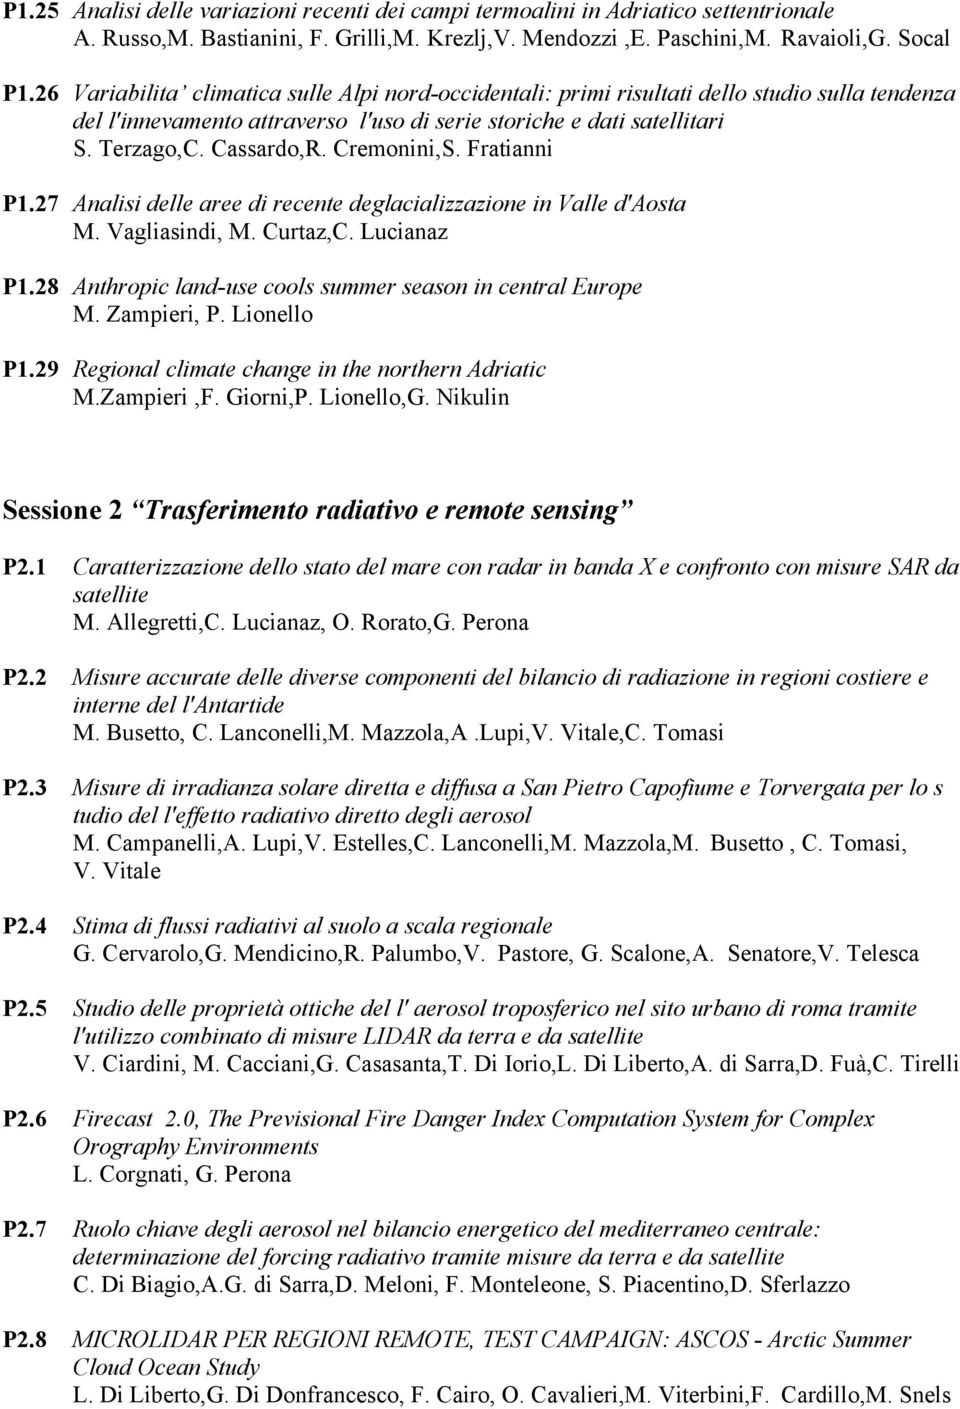 Cremonini,S. Fratianni P1.27 Analisi delle aree di recente deglacializzazione in Valle d'aosta M. Vagliasindi, M. Curtaz,C. Lucianaz P1.28 Anthropic land-use cools summer season in central Europe M.